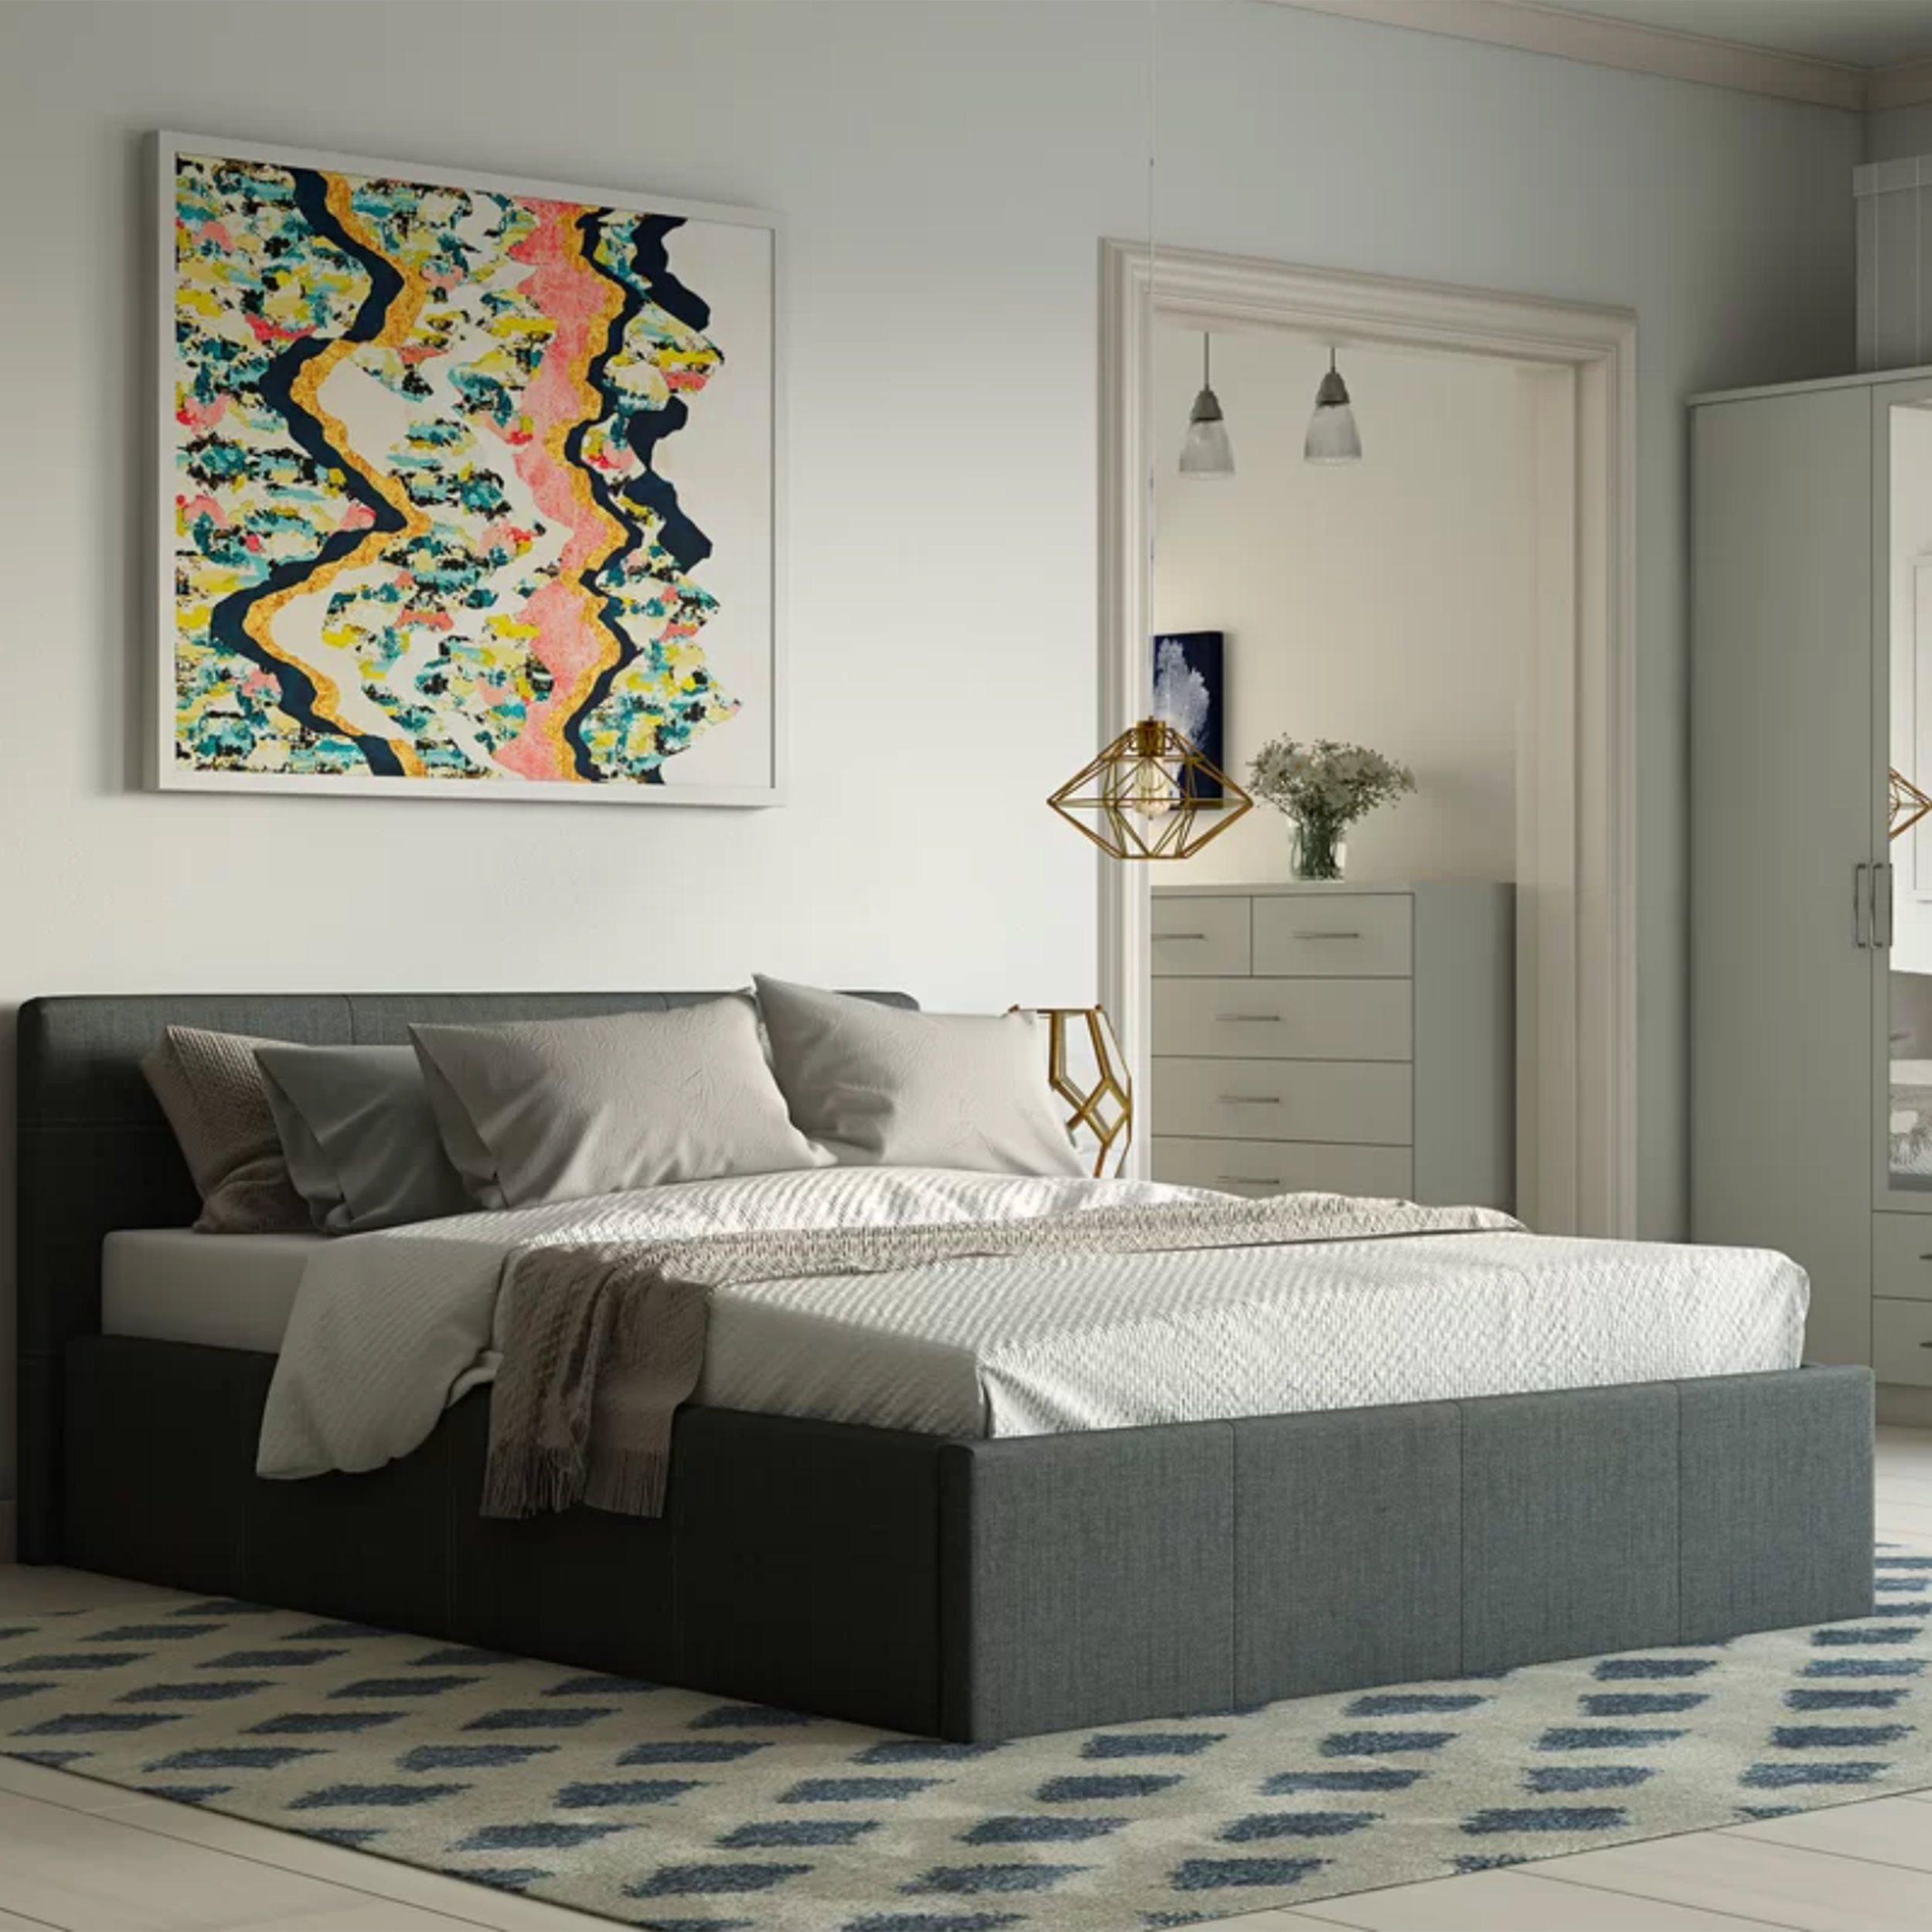 Peachy Buying An Ottoman Bed For A Small Guest Room Atelier Tally Andrewgaddart Wooden Chair Designs For Living Room Andrewgaddartcom